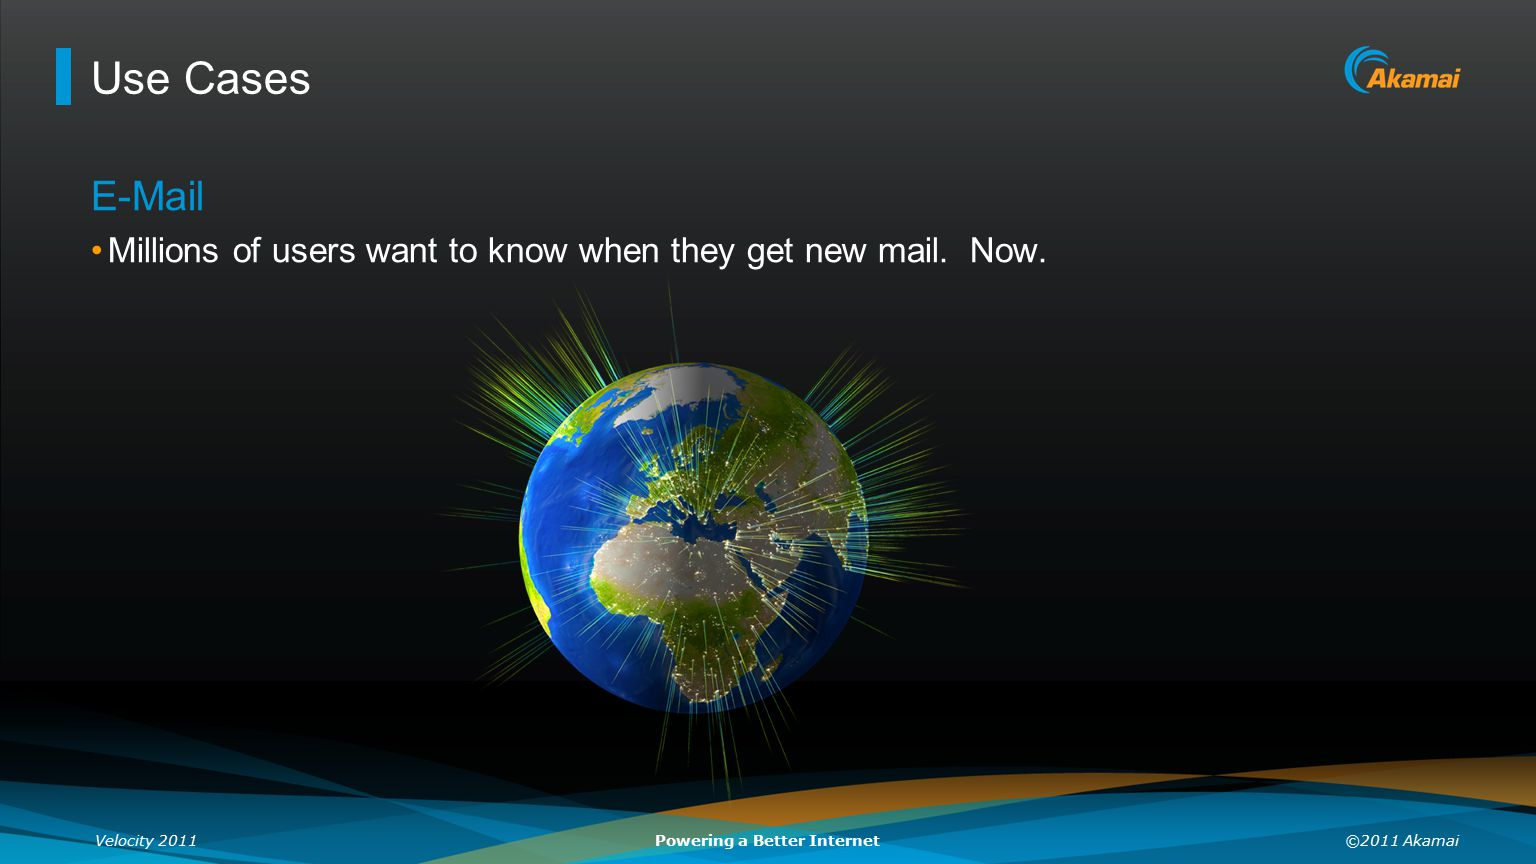 Use Cases E-Mail Millions of users want to know when they get new mail. Now.